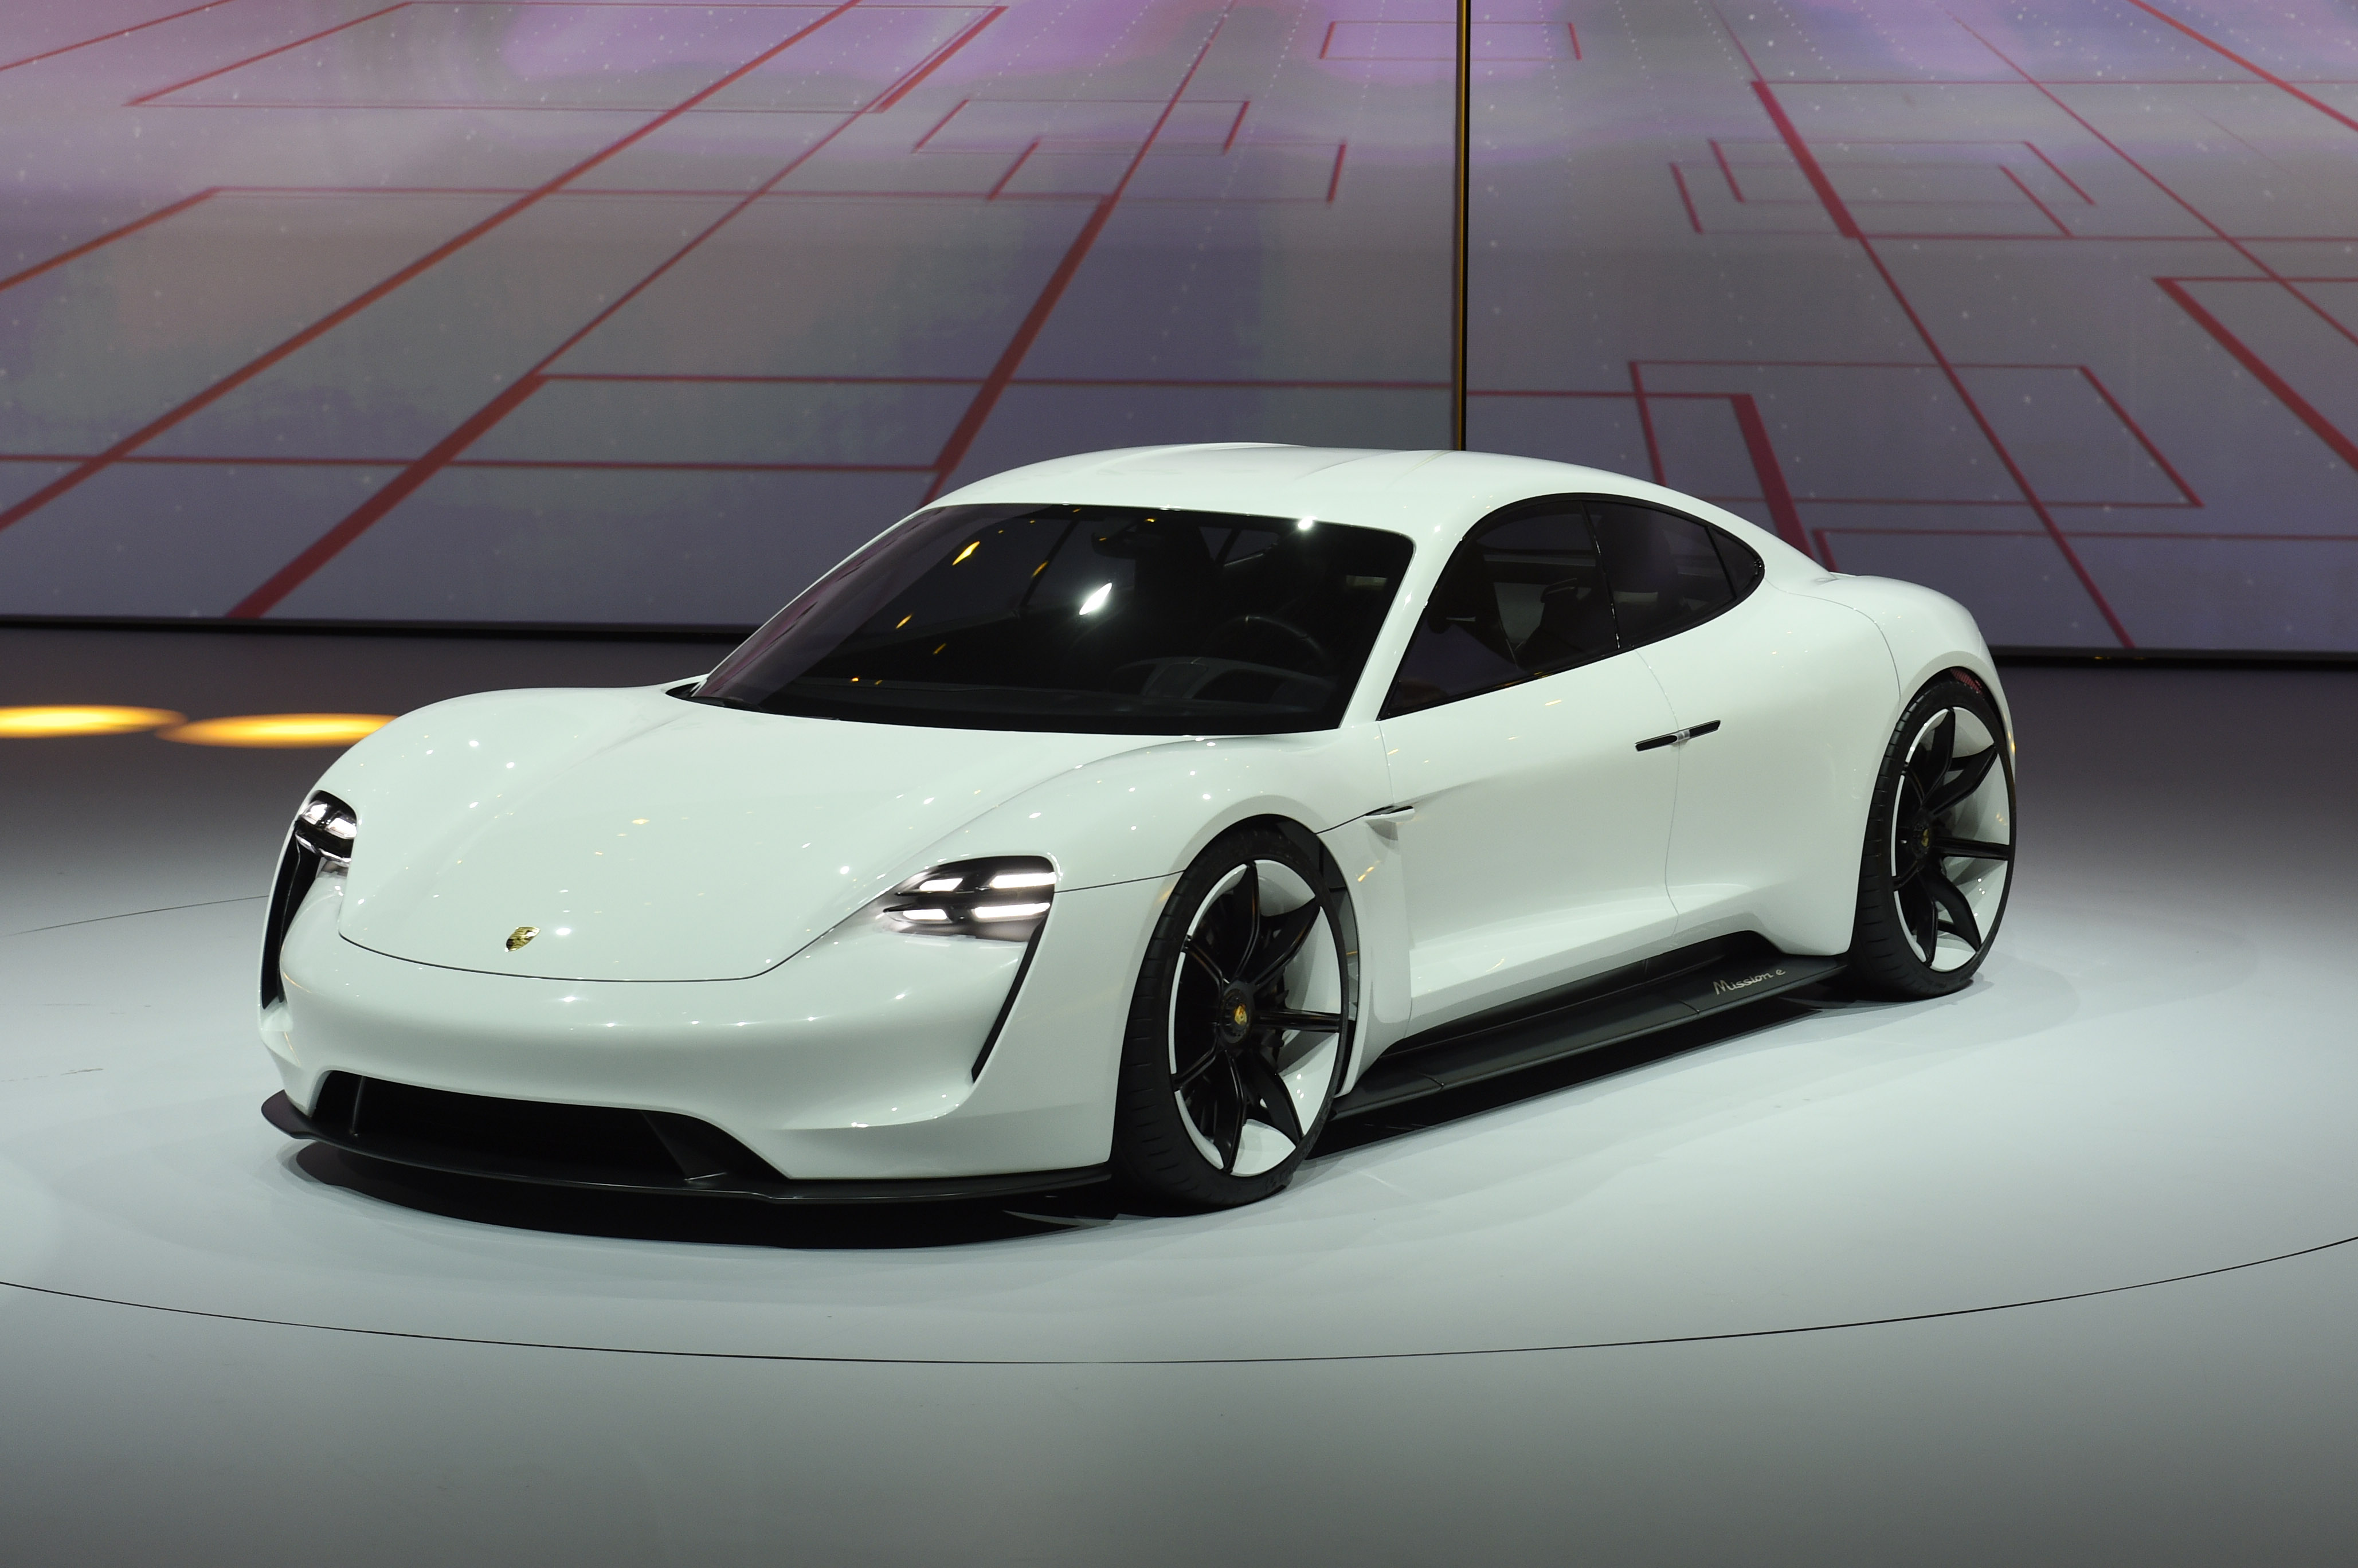 Porsche S Mission E Is Charging Up To Give Tesla Some Sporty Compeion